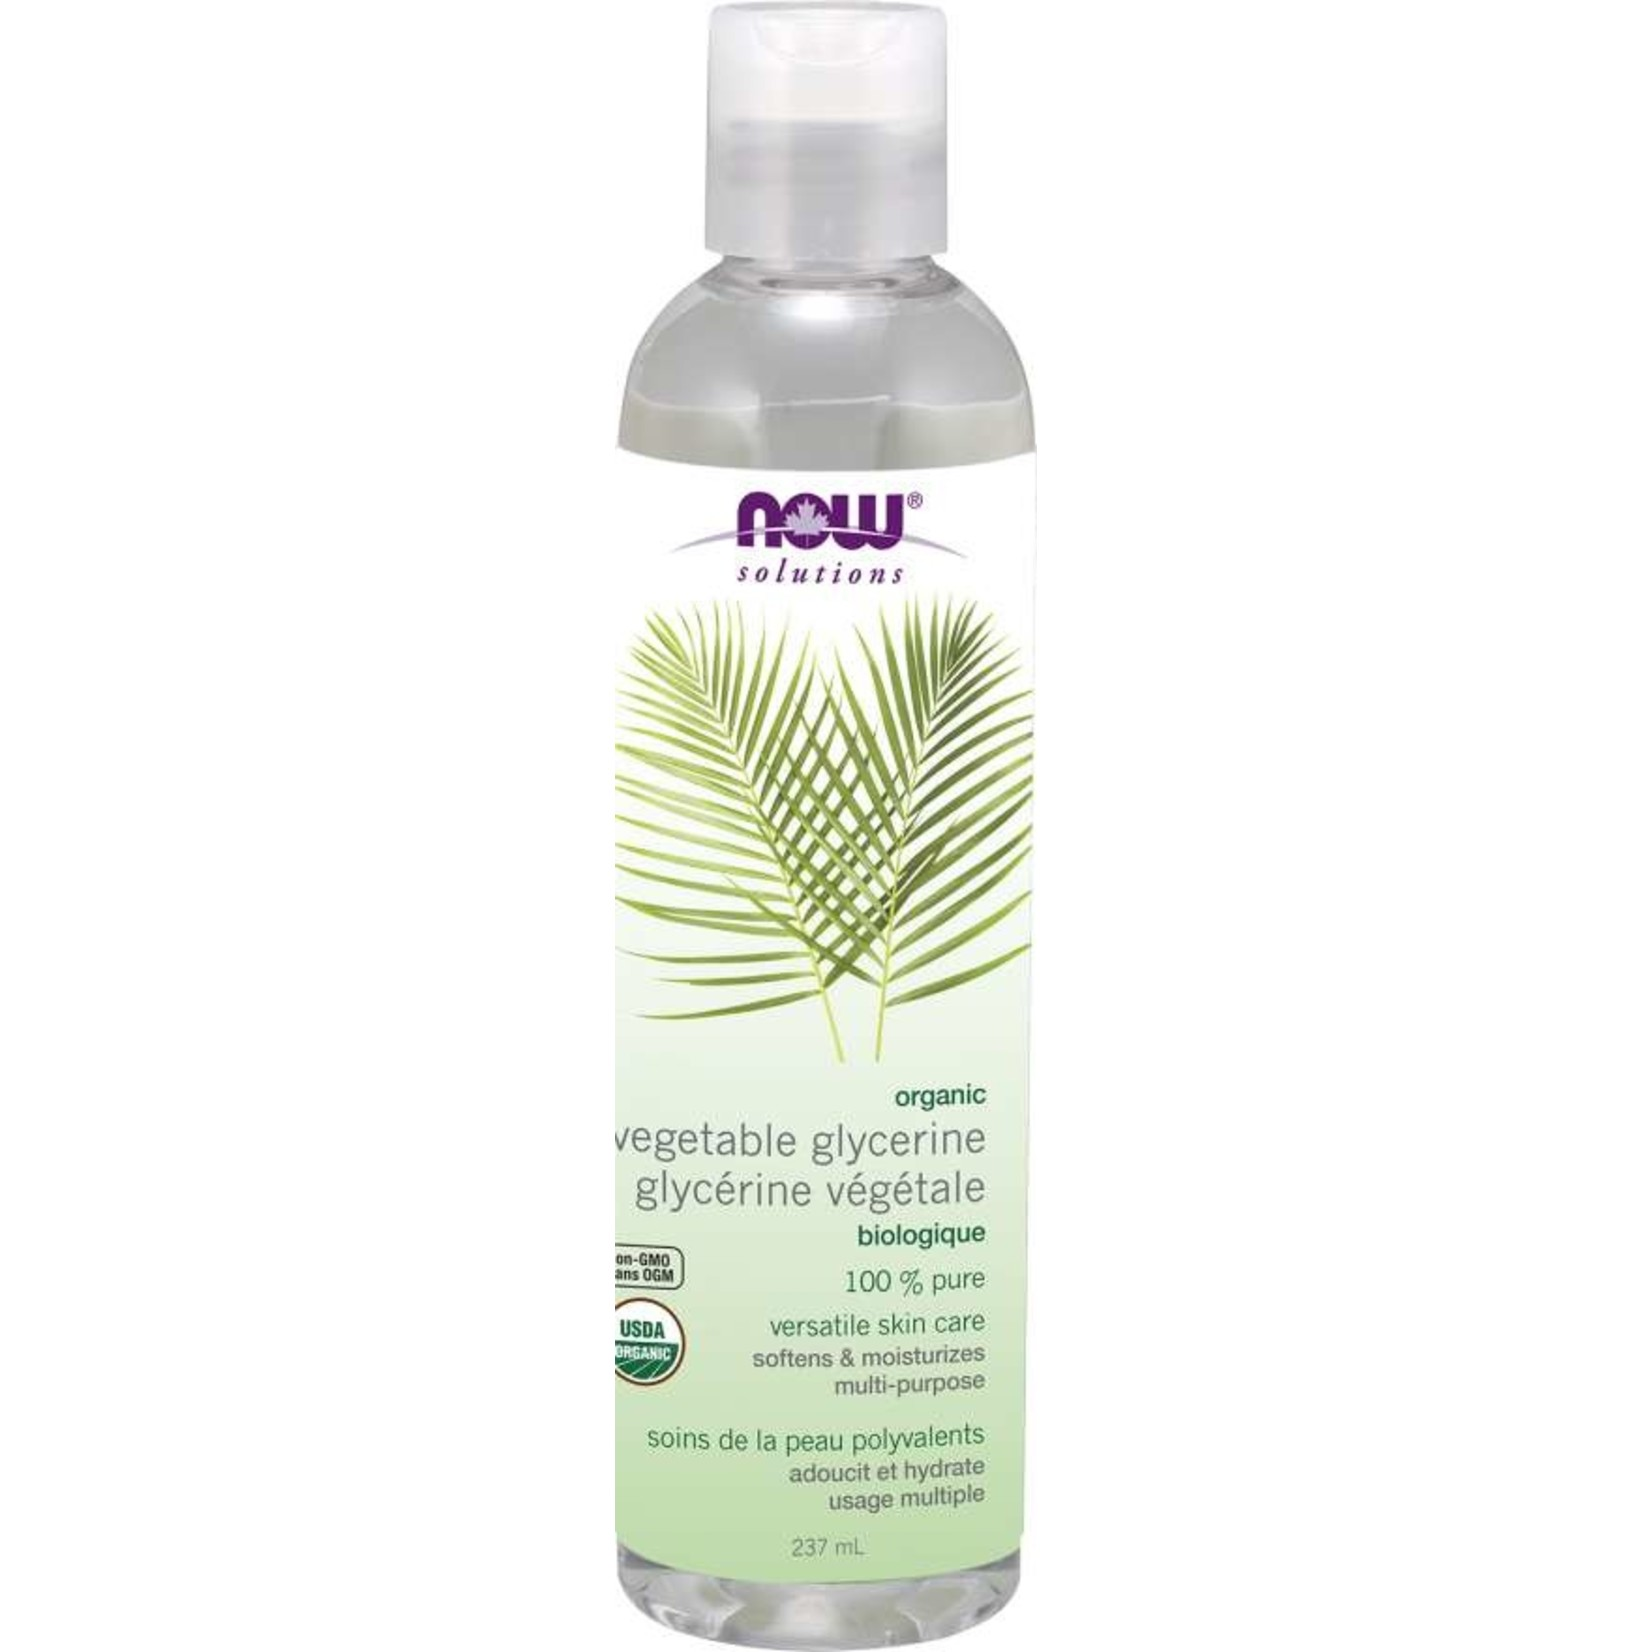 NOW NOW Organic Vegetable Glycerin 100% Pure 237ml